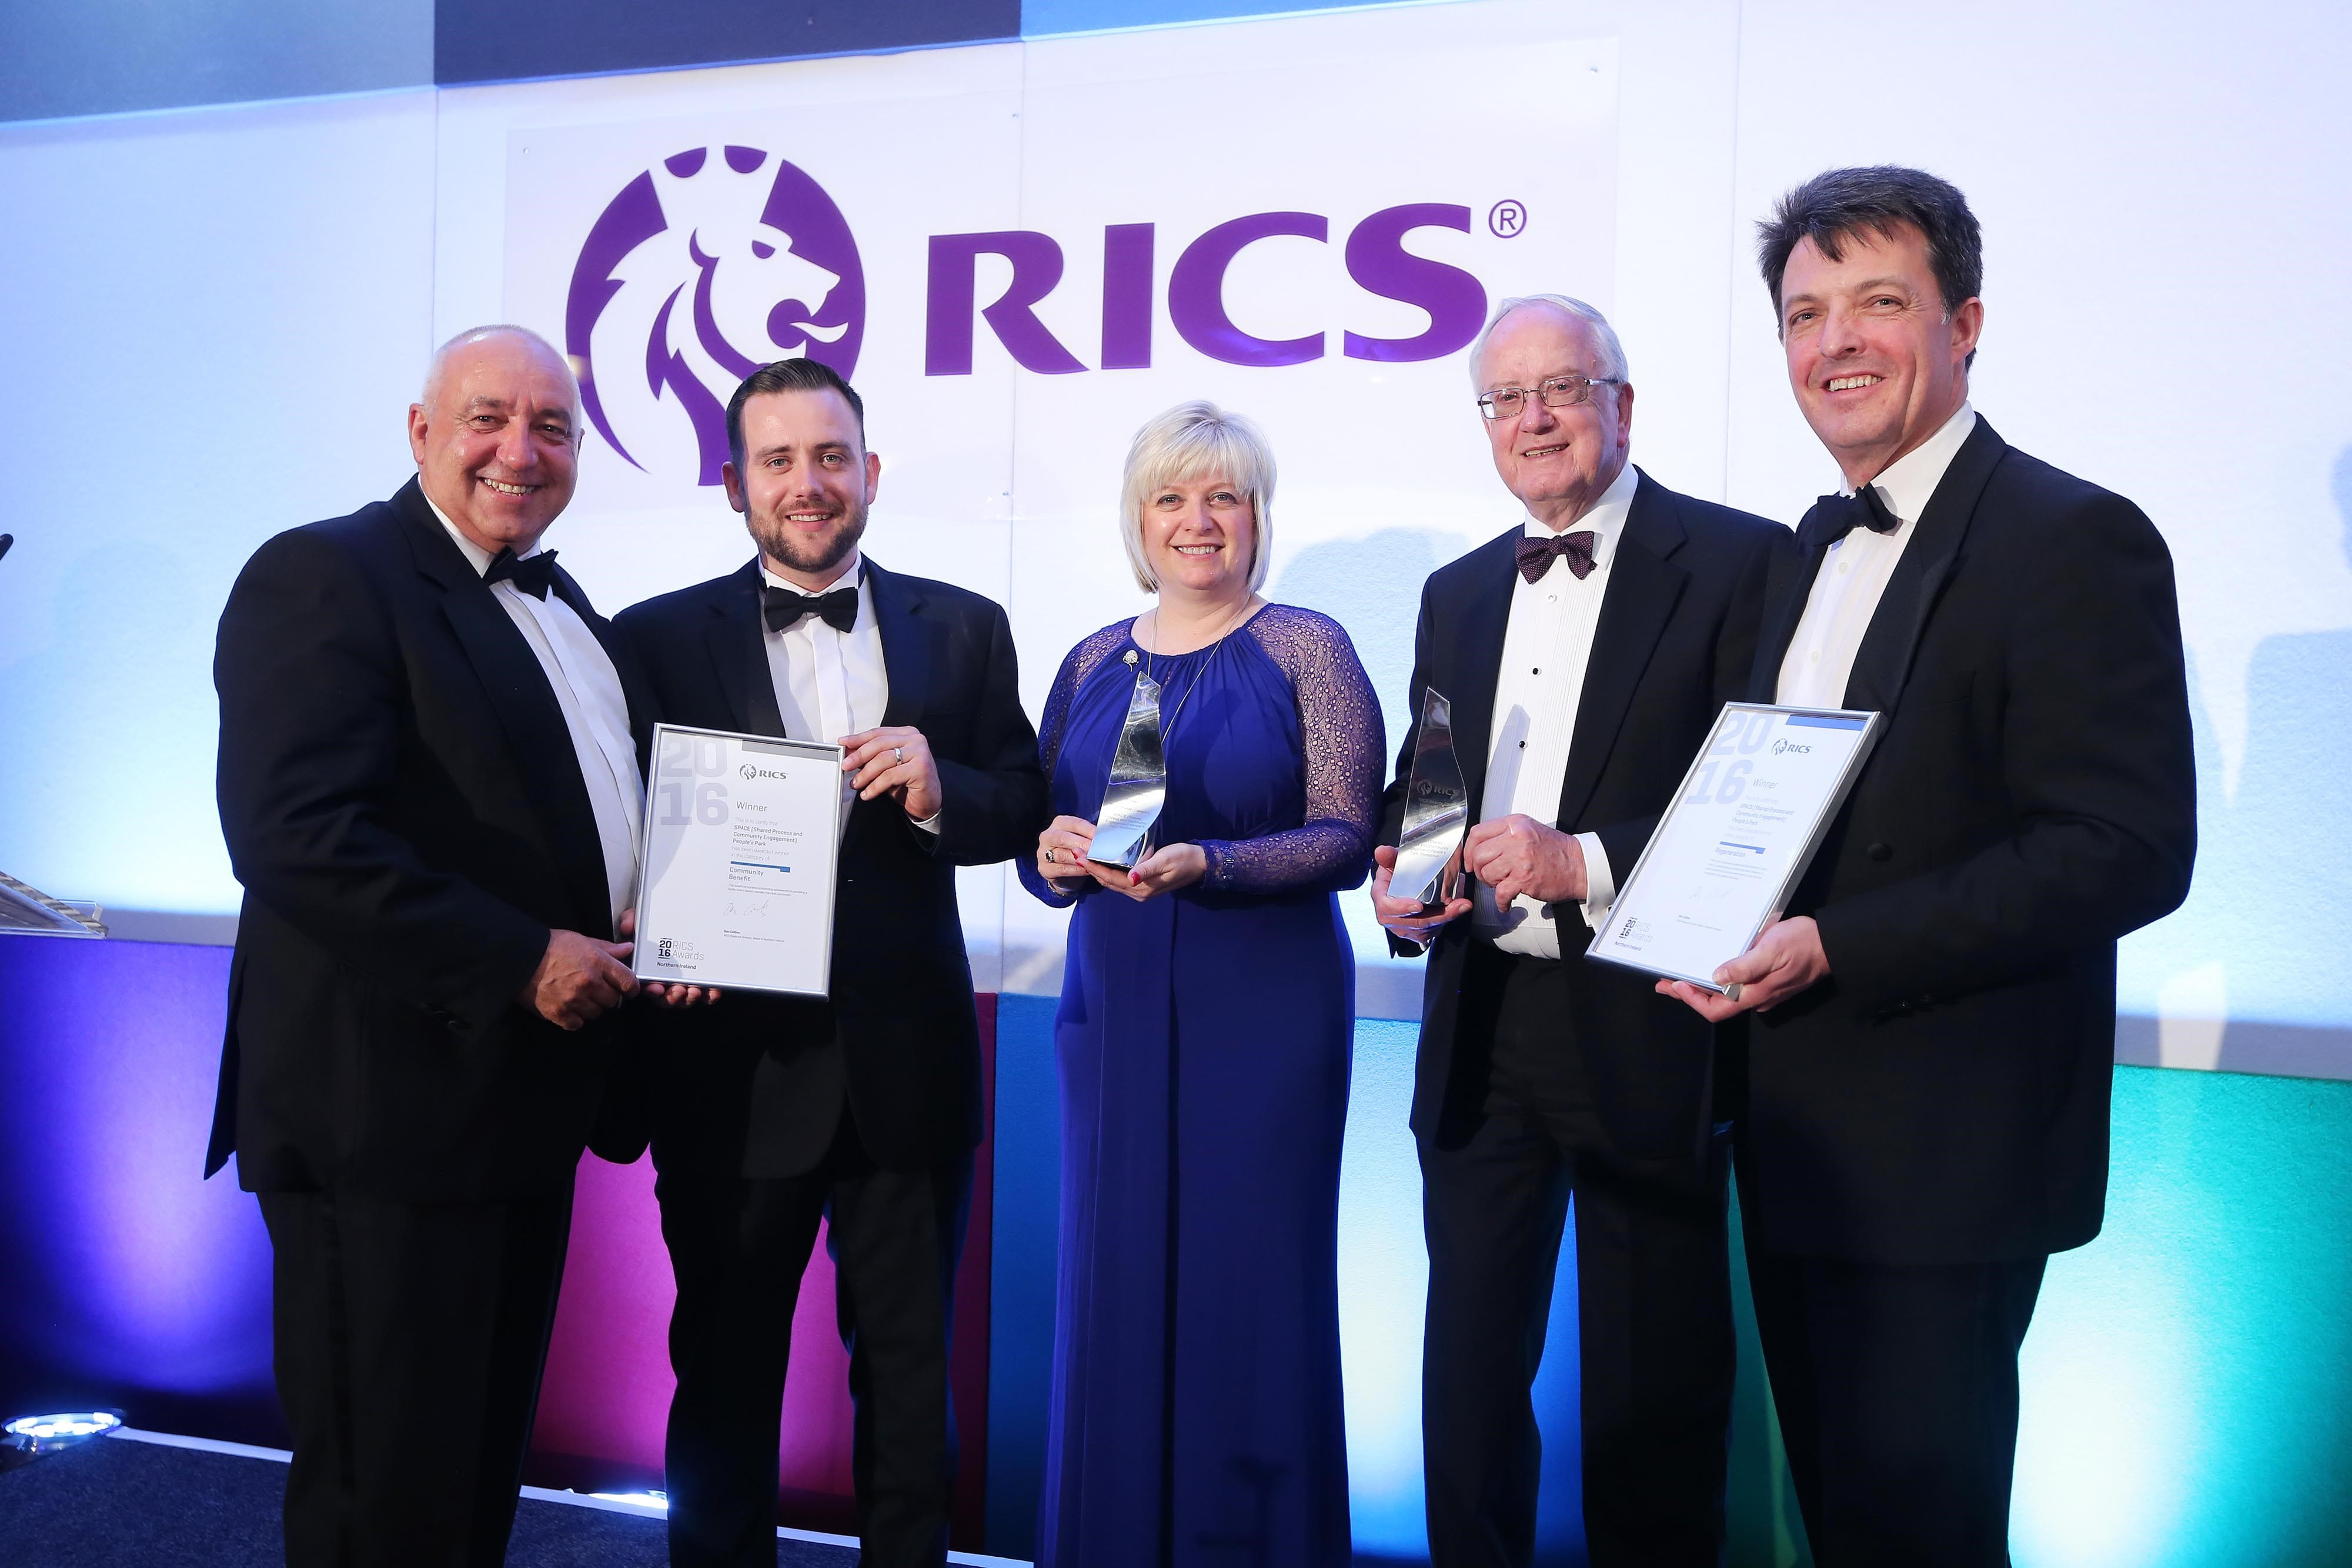 Pictured at the RICS Awards are Clifford Forbes, Community Development Officer, Michael Ruddy, Parks Development Officer, Diane Clarke, Acting Head of Community Development (Craigavon), Alderman Kenneth Twyble, Chair of the SPACE Steering Committee and Andrew Haley, Director of The Paul Hogarth Company